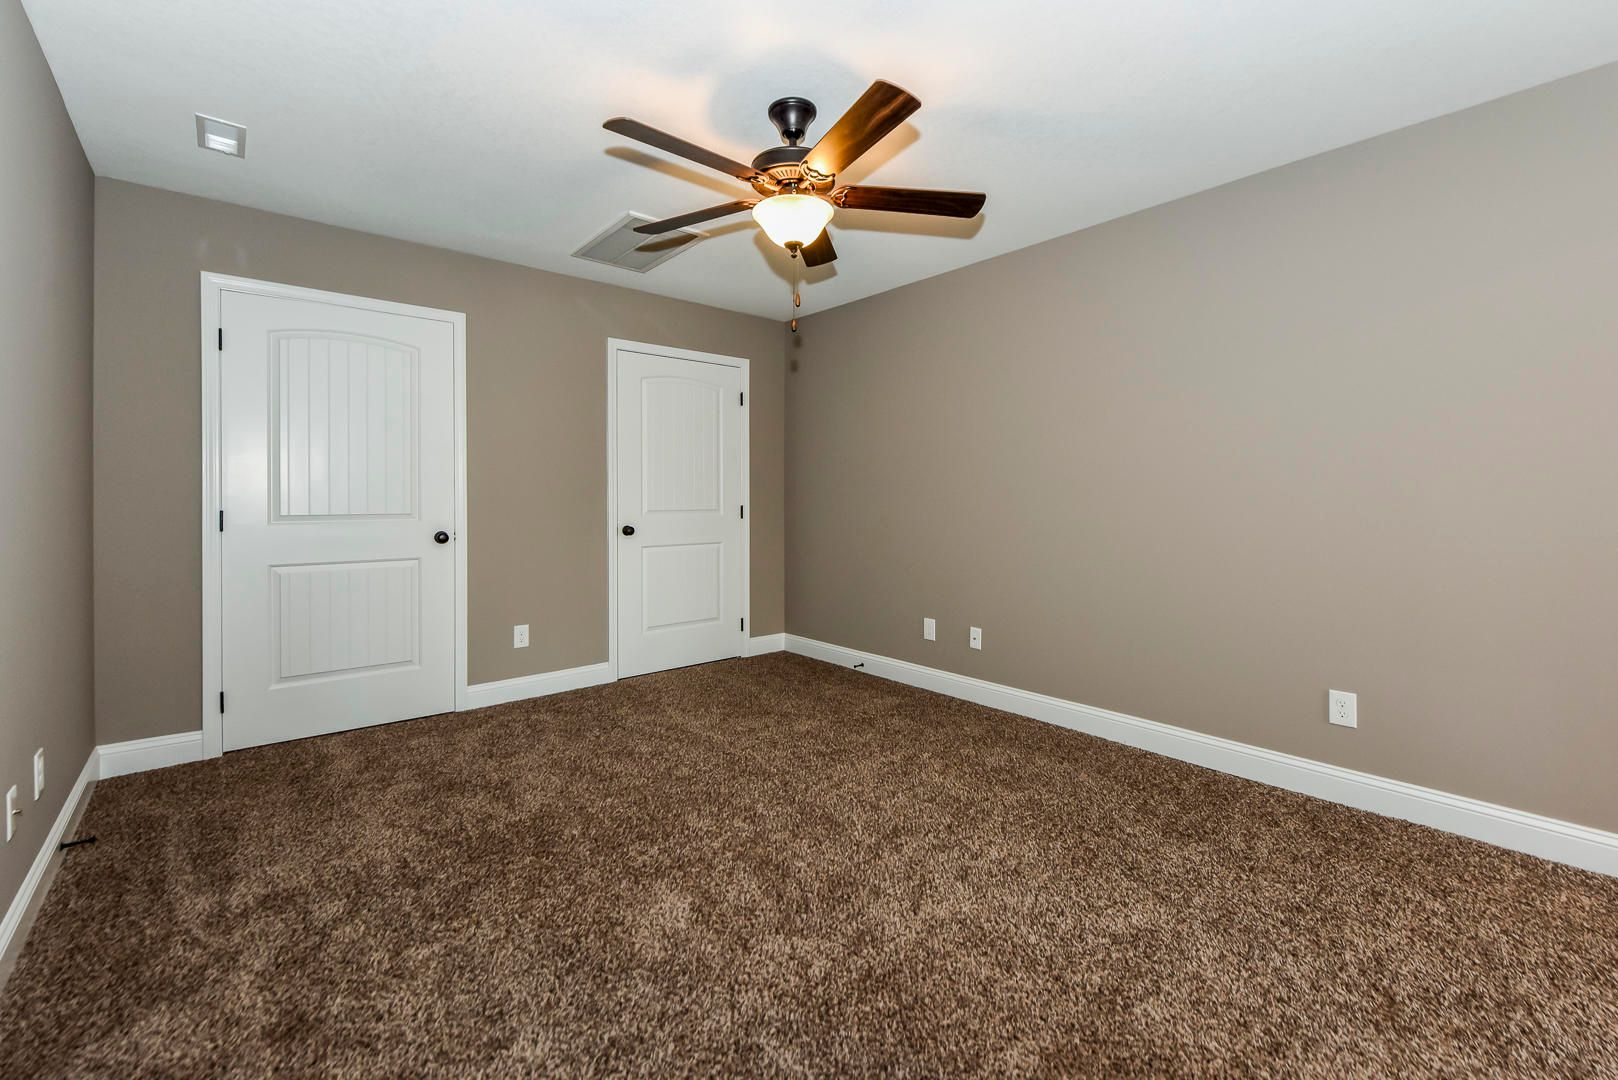 Bonus room in basement